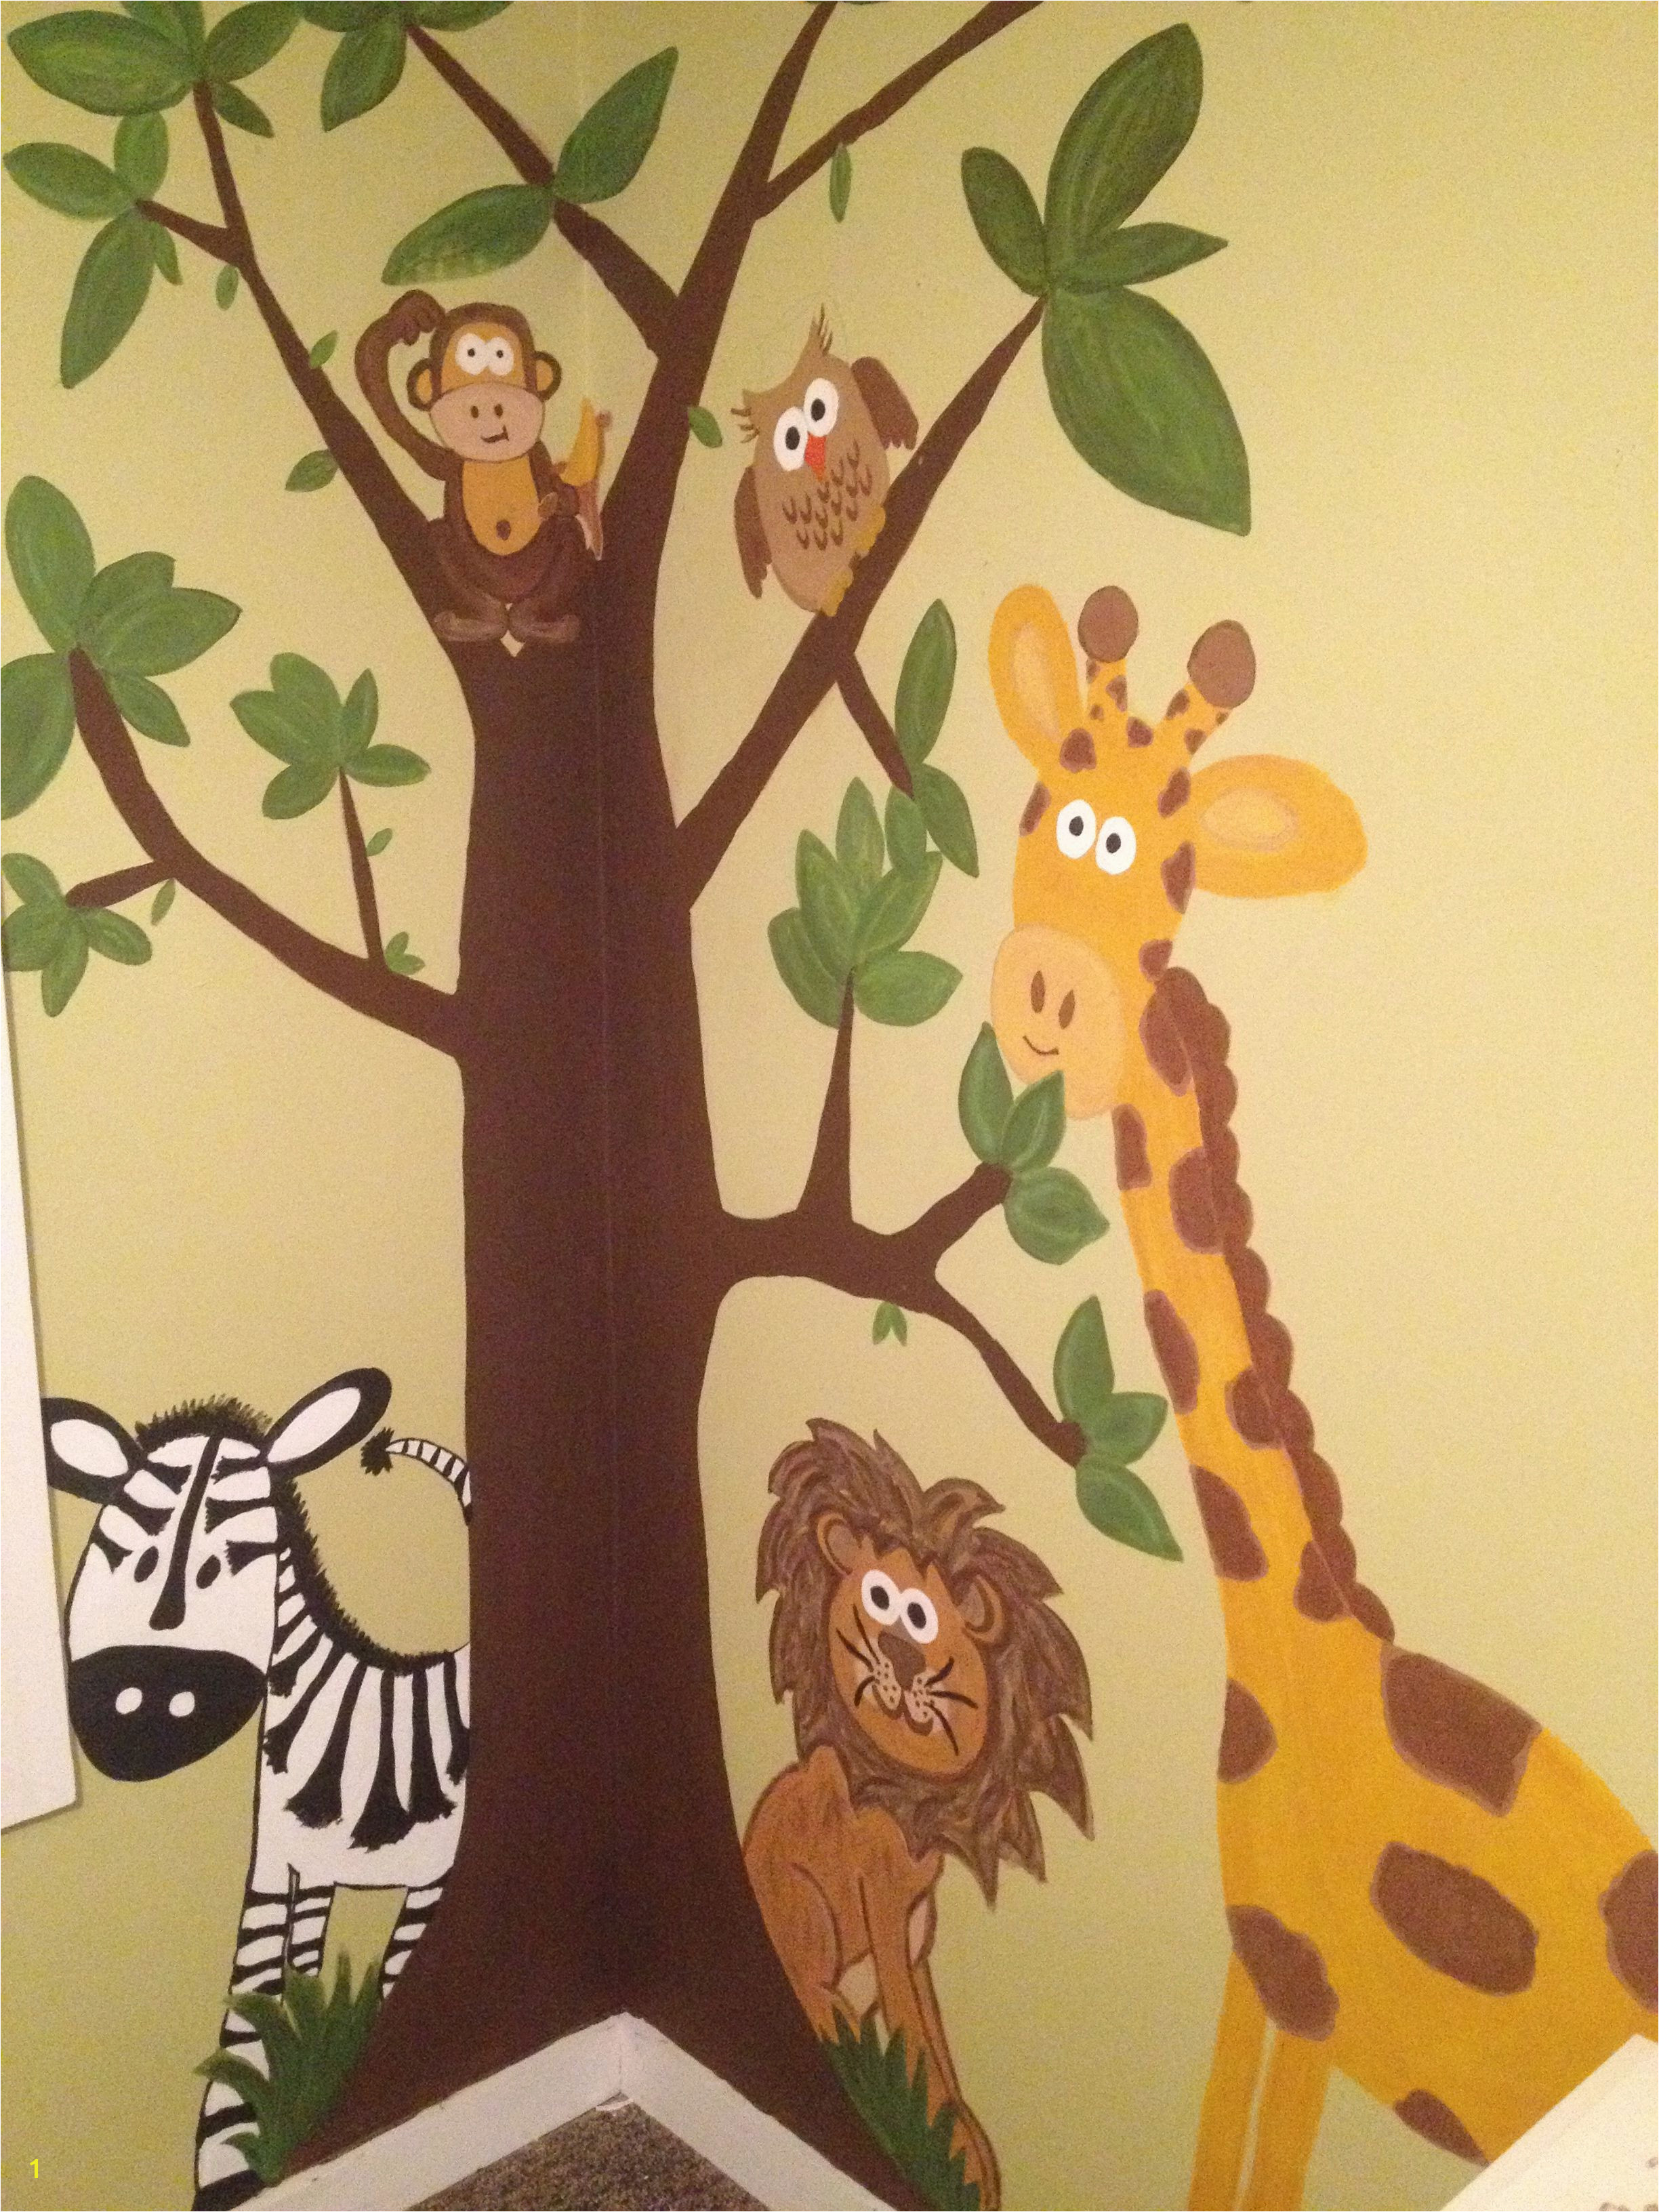 Jungle wall mural hand painted =]